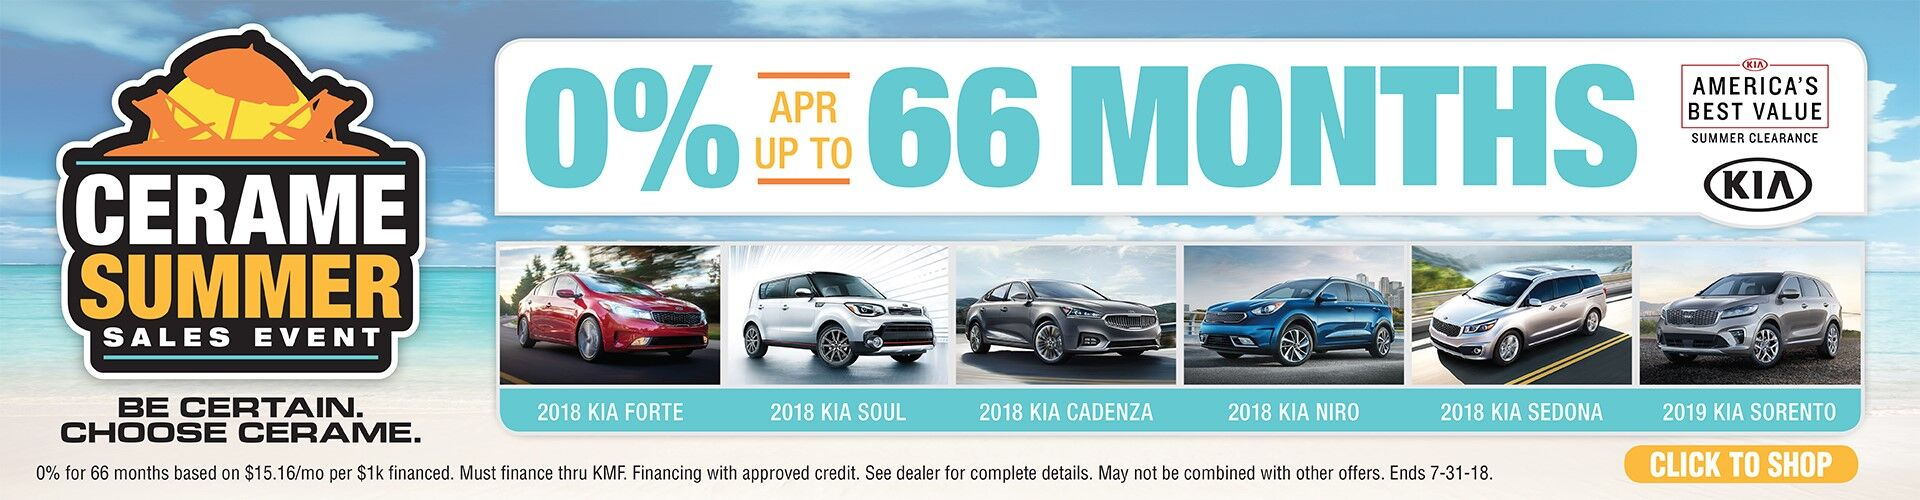 0% for 66 Months on New Kia Models